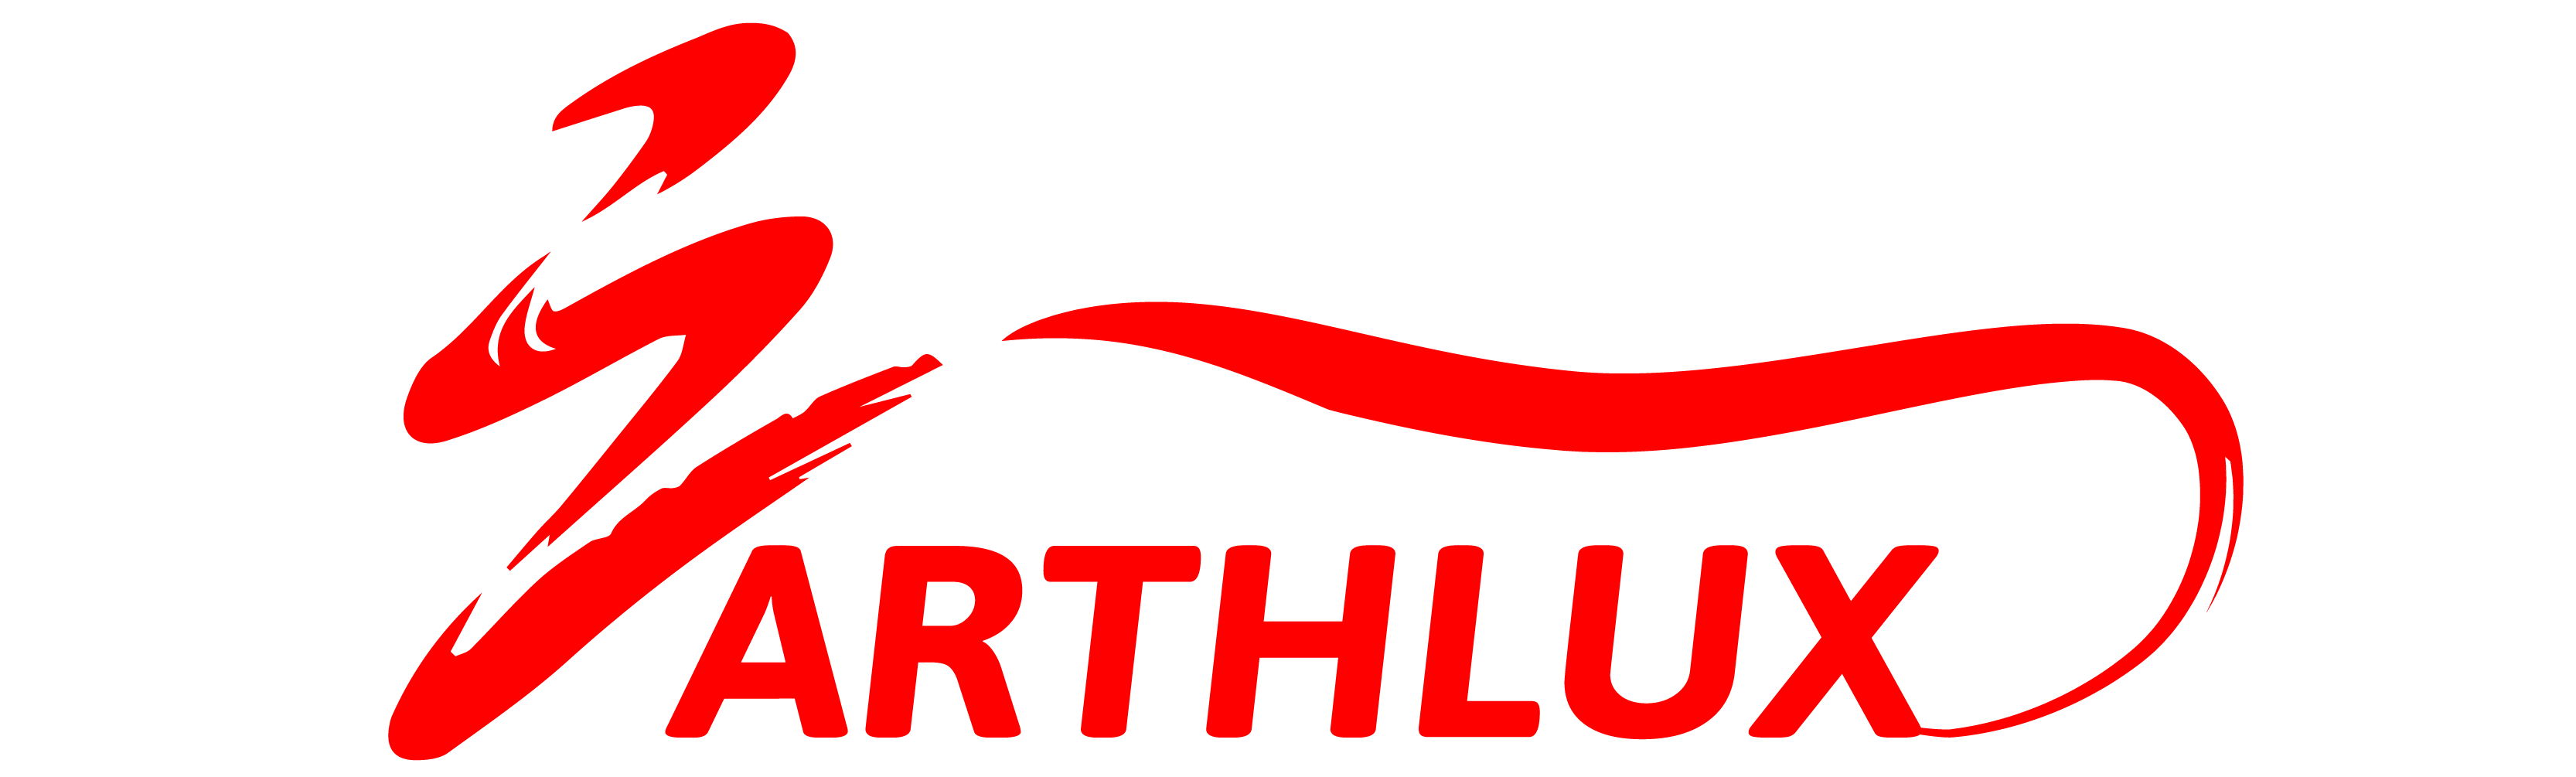 Welcome to Earthlux Lighting Technology